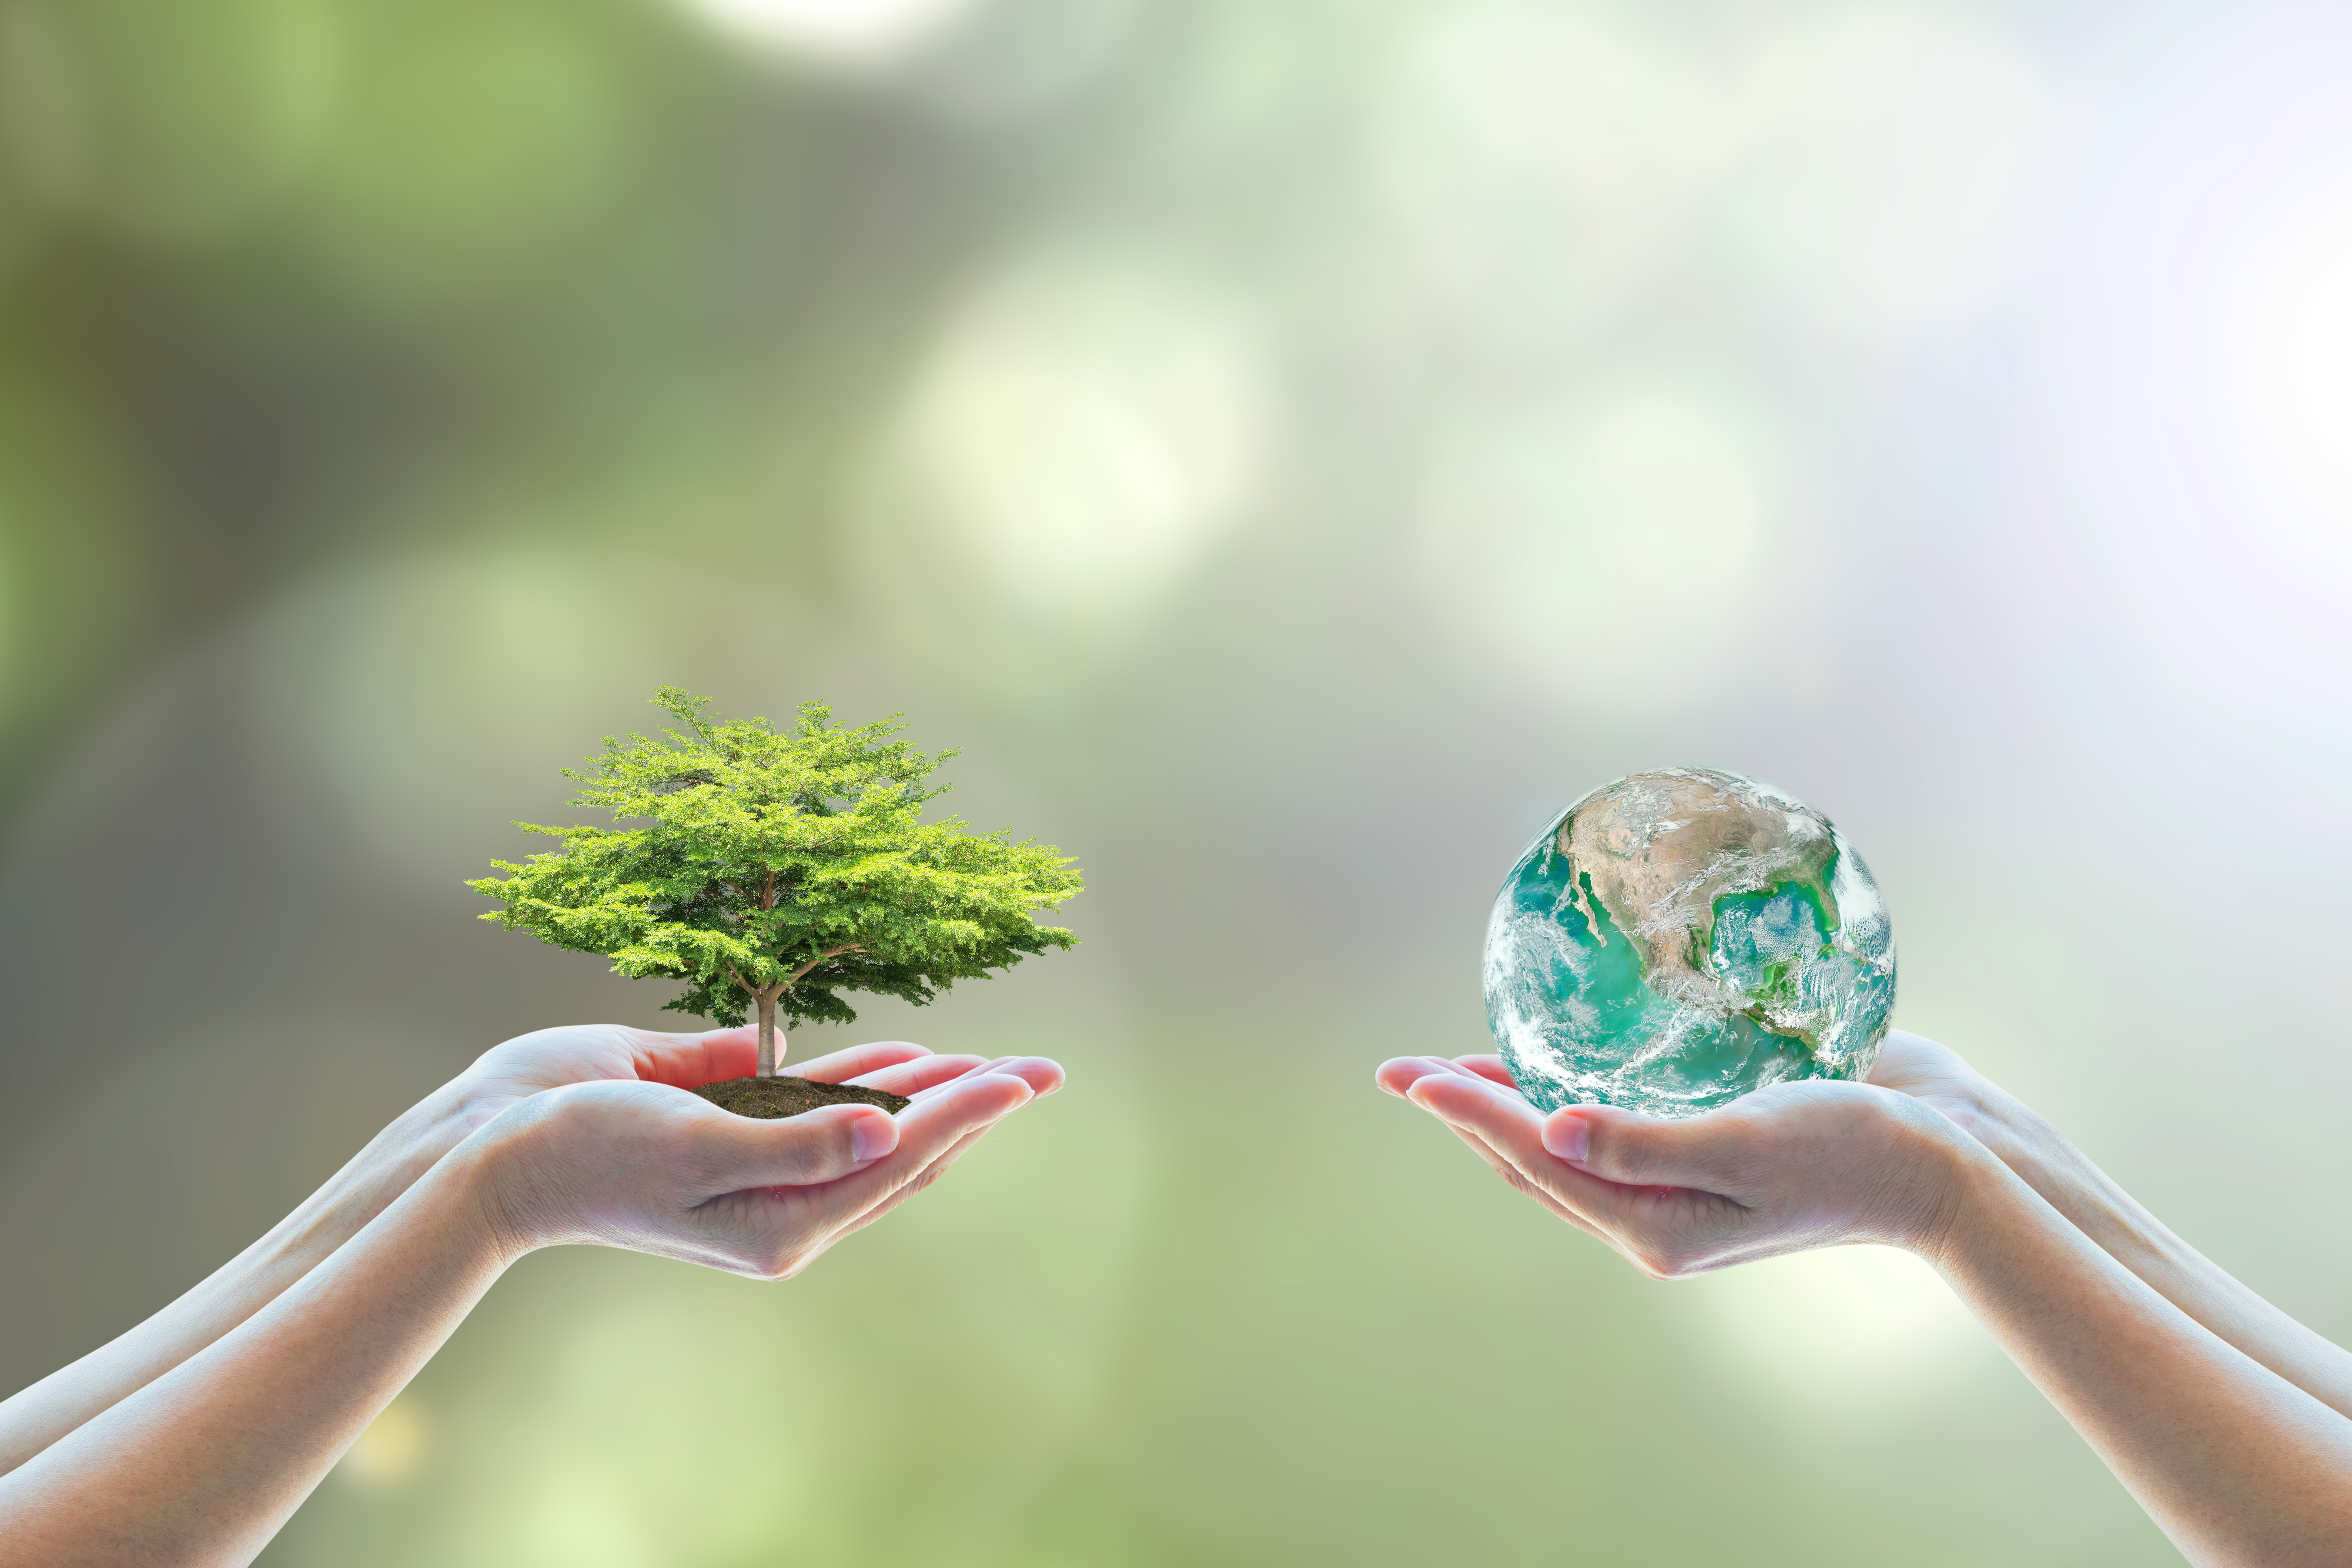 one hand holding the globe and another hand holding a tree, a symblic photo to show that Israel wants to save the world